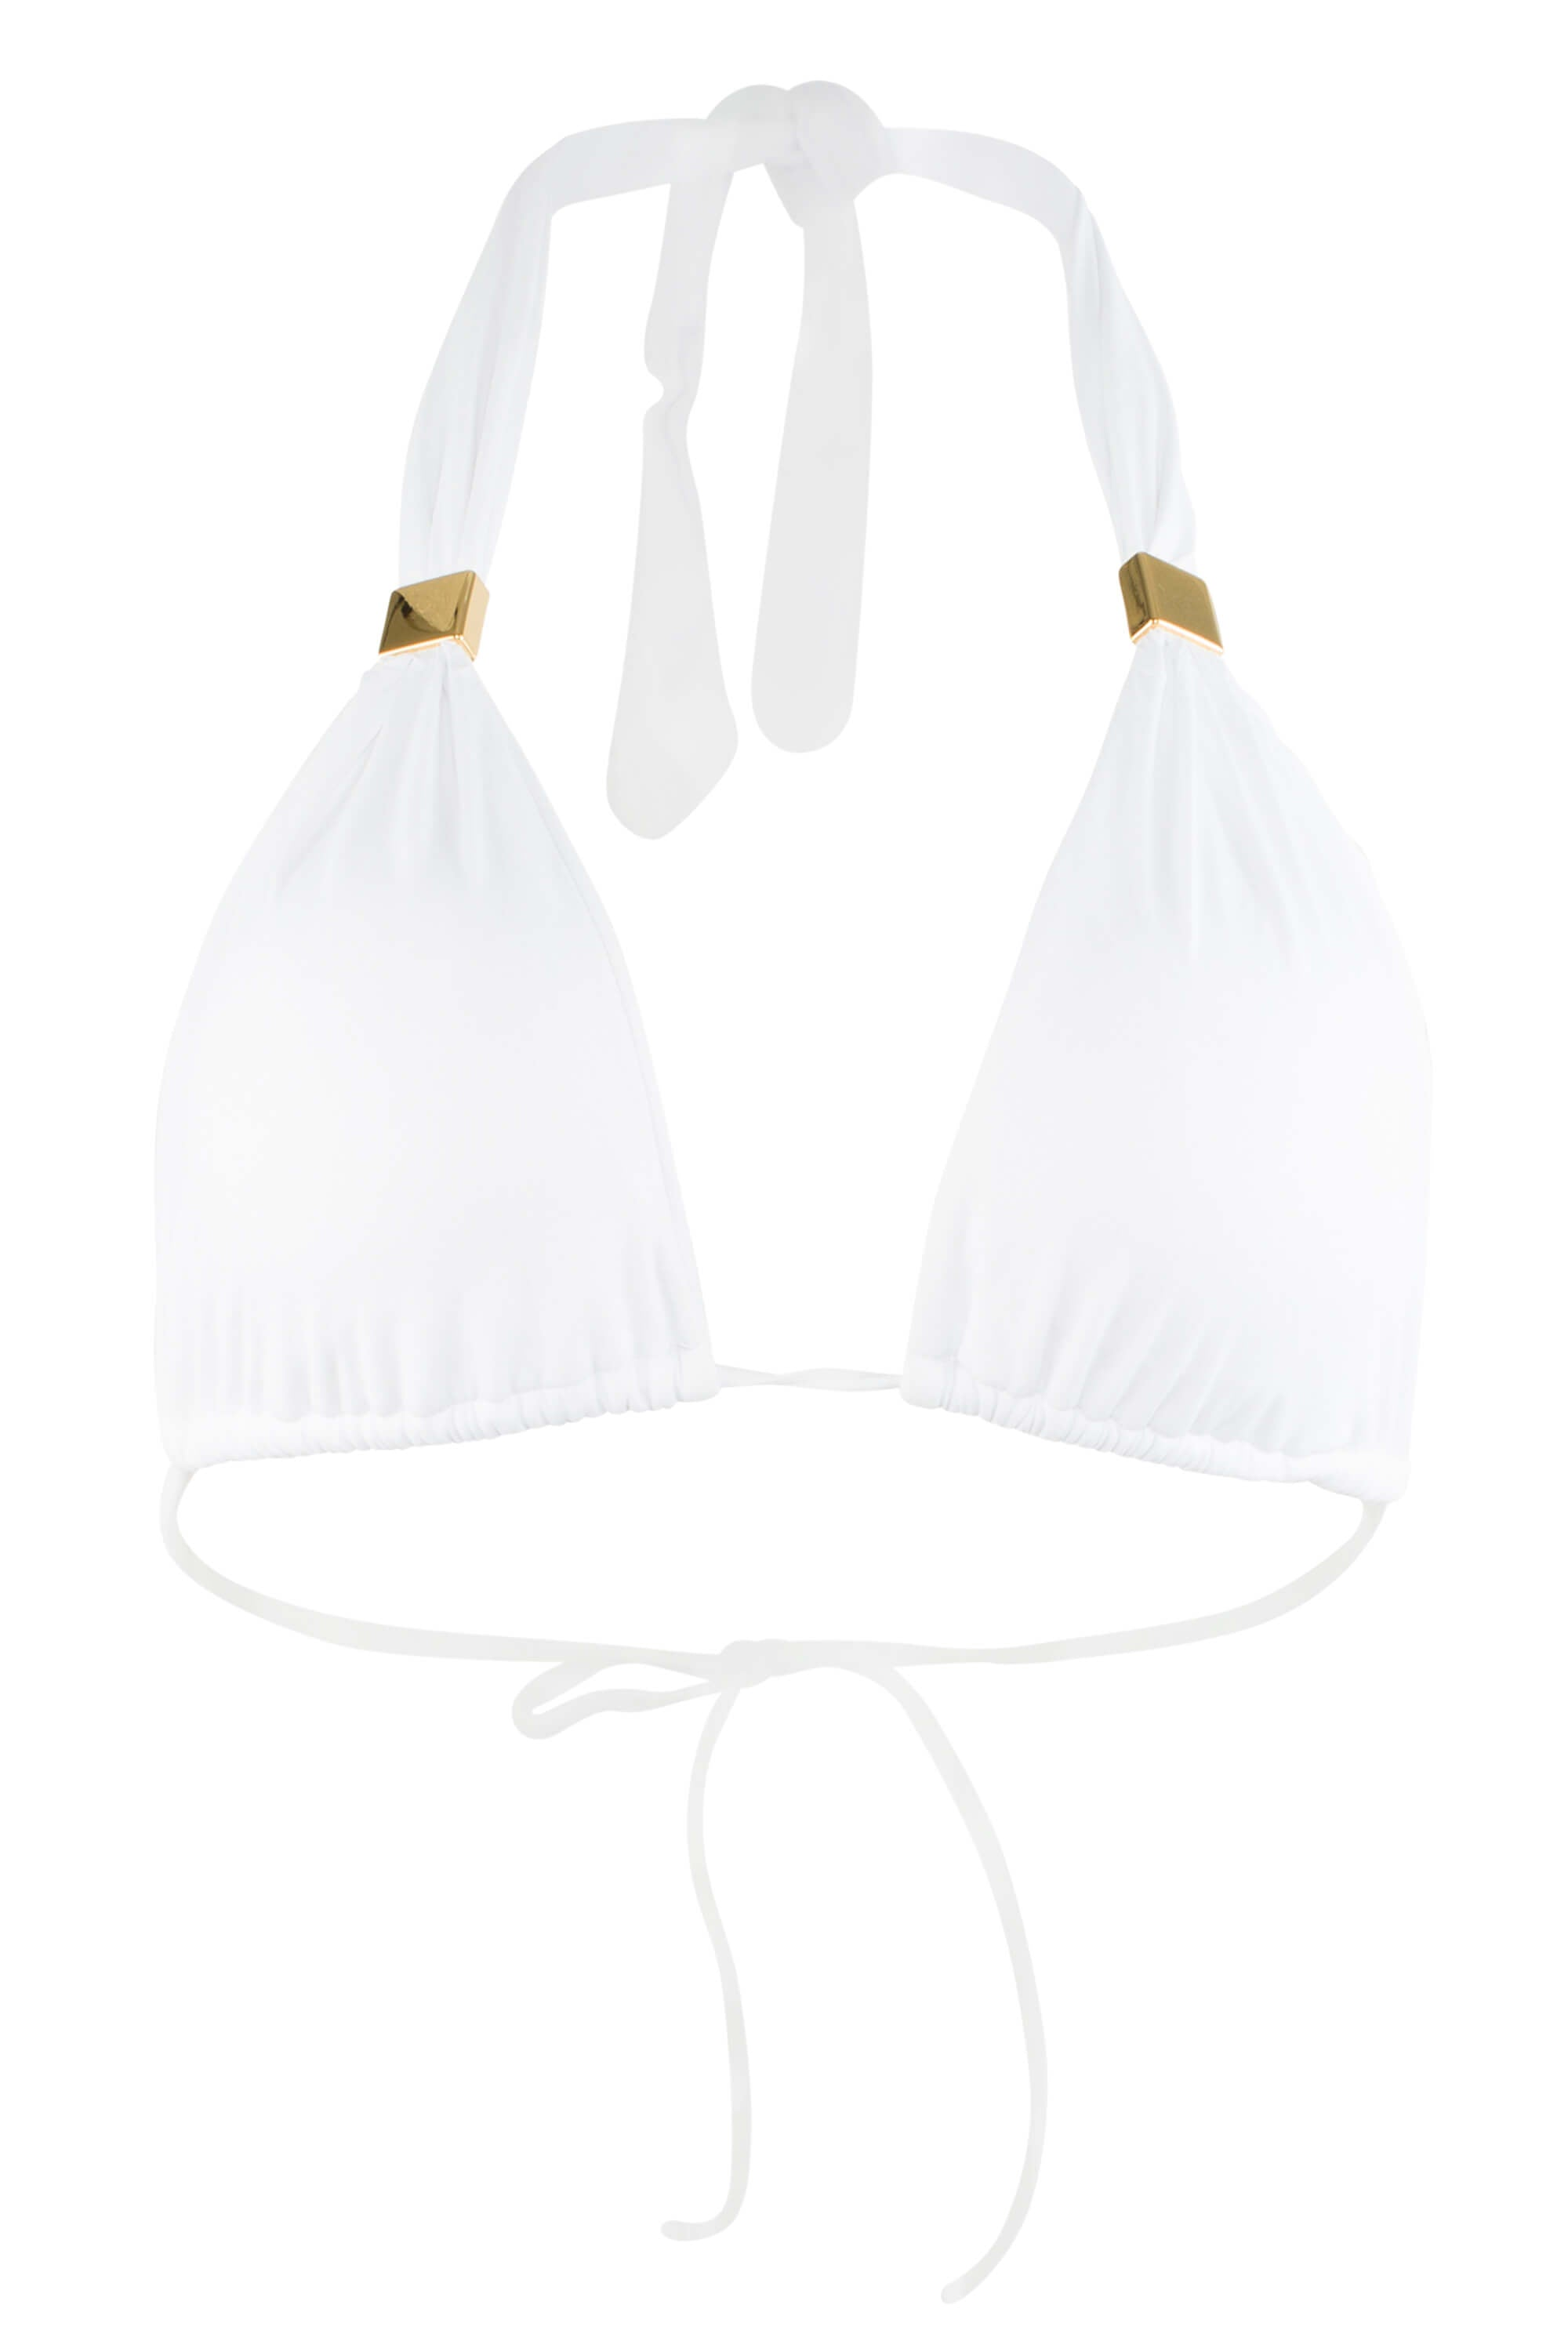 Nina white bathing suit top.